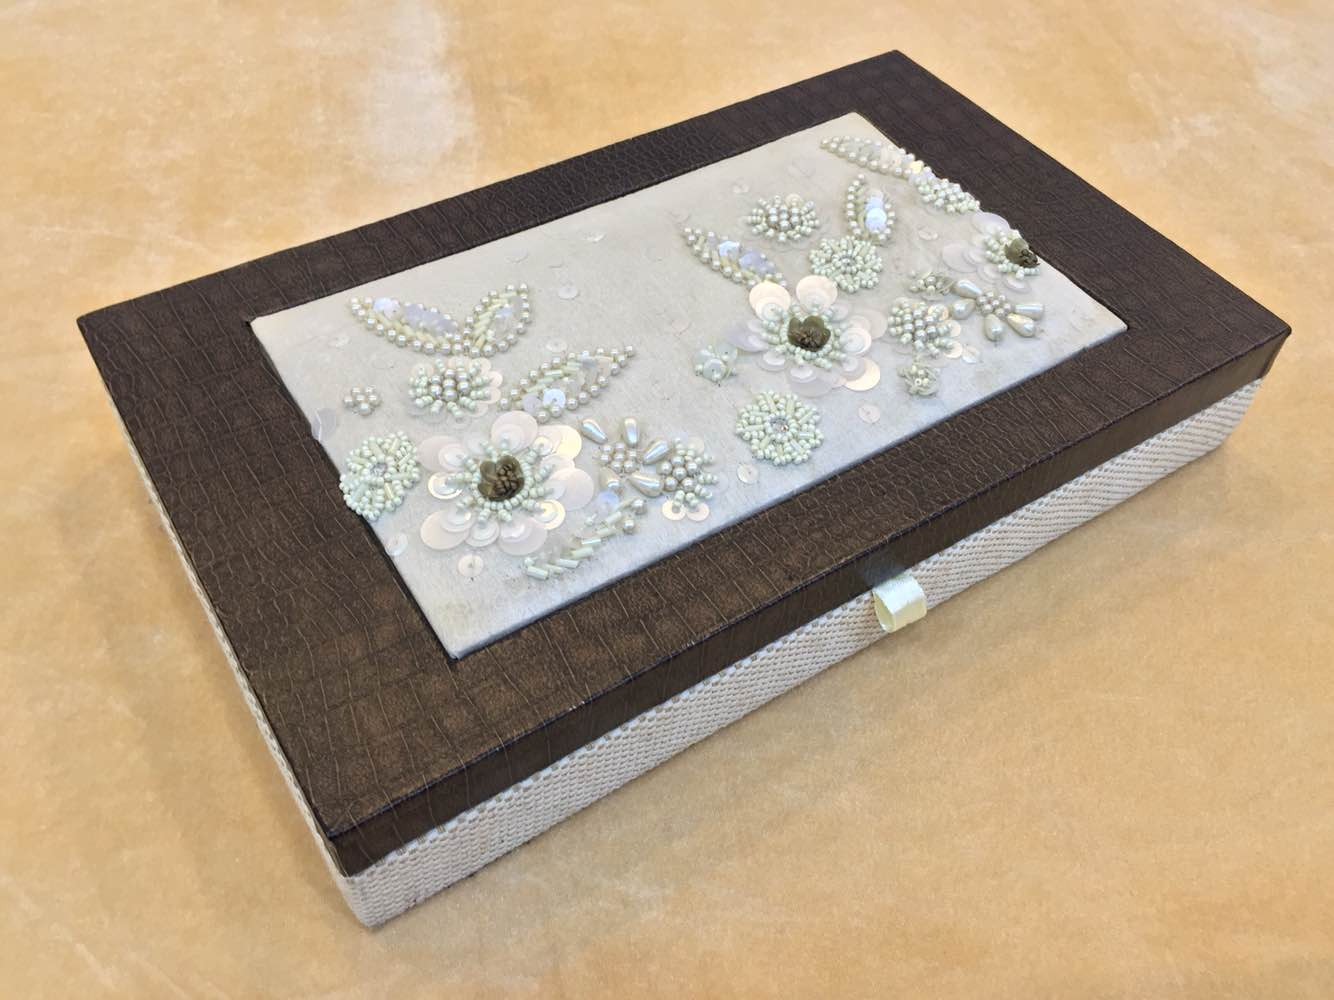 Beaded Dry Fruit Box Manufacturer   We are leading manufacturer, supplier and wholesaler of Beaded Dry Fruit Box in Delhi